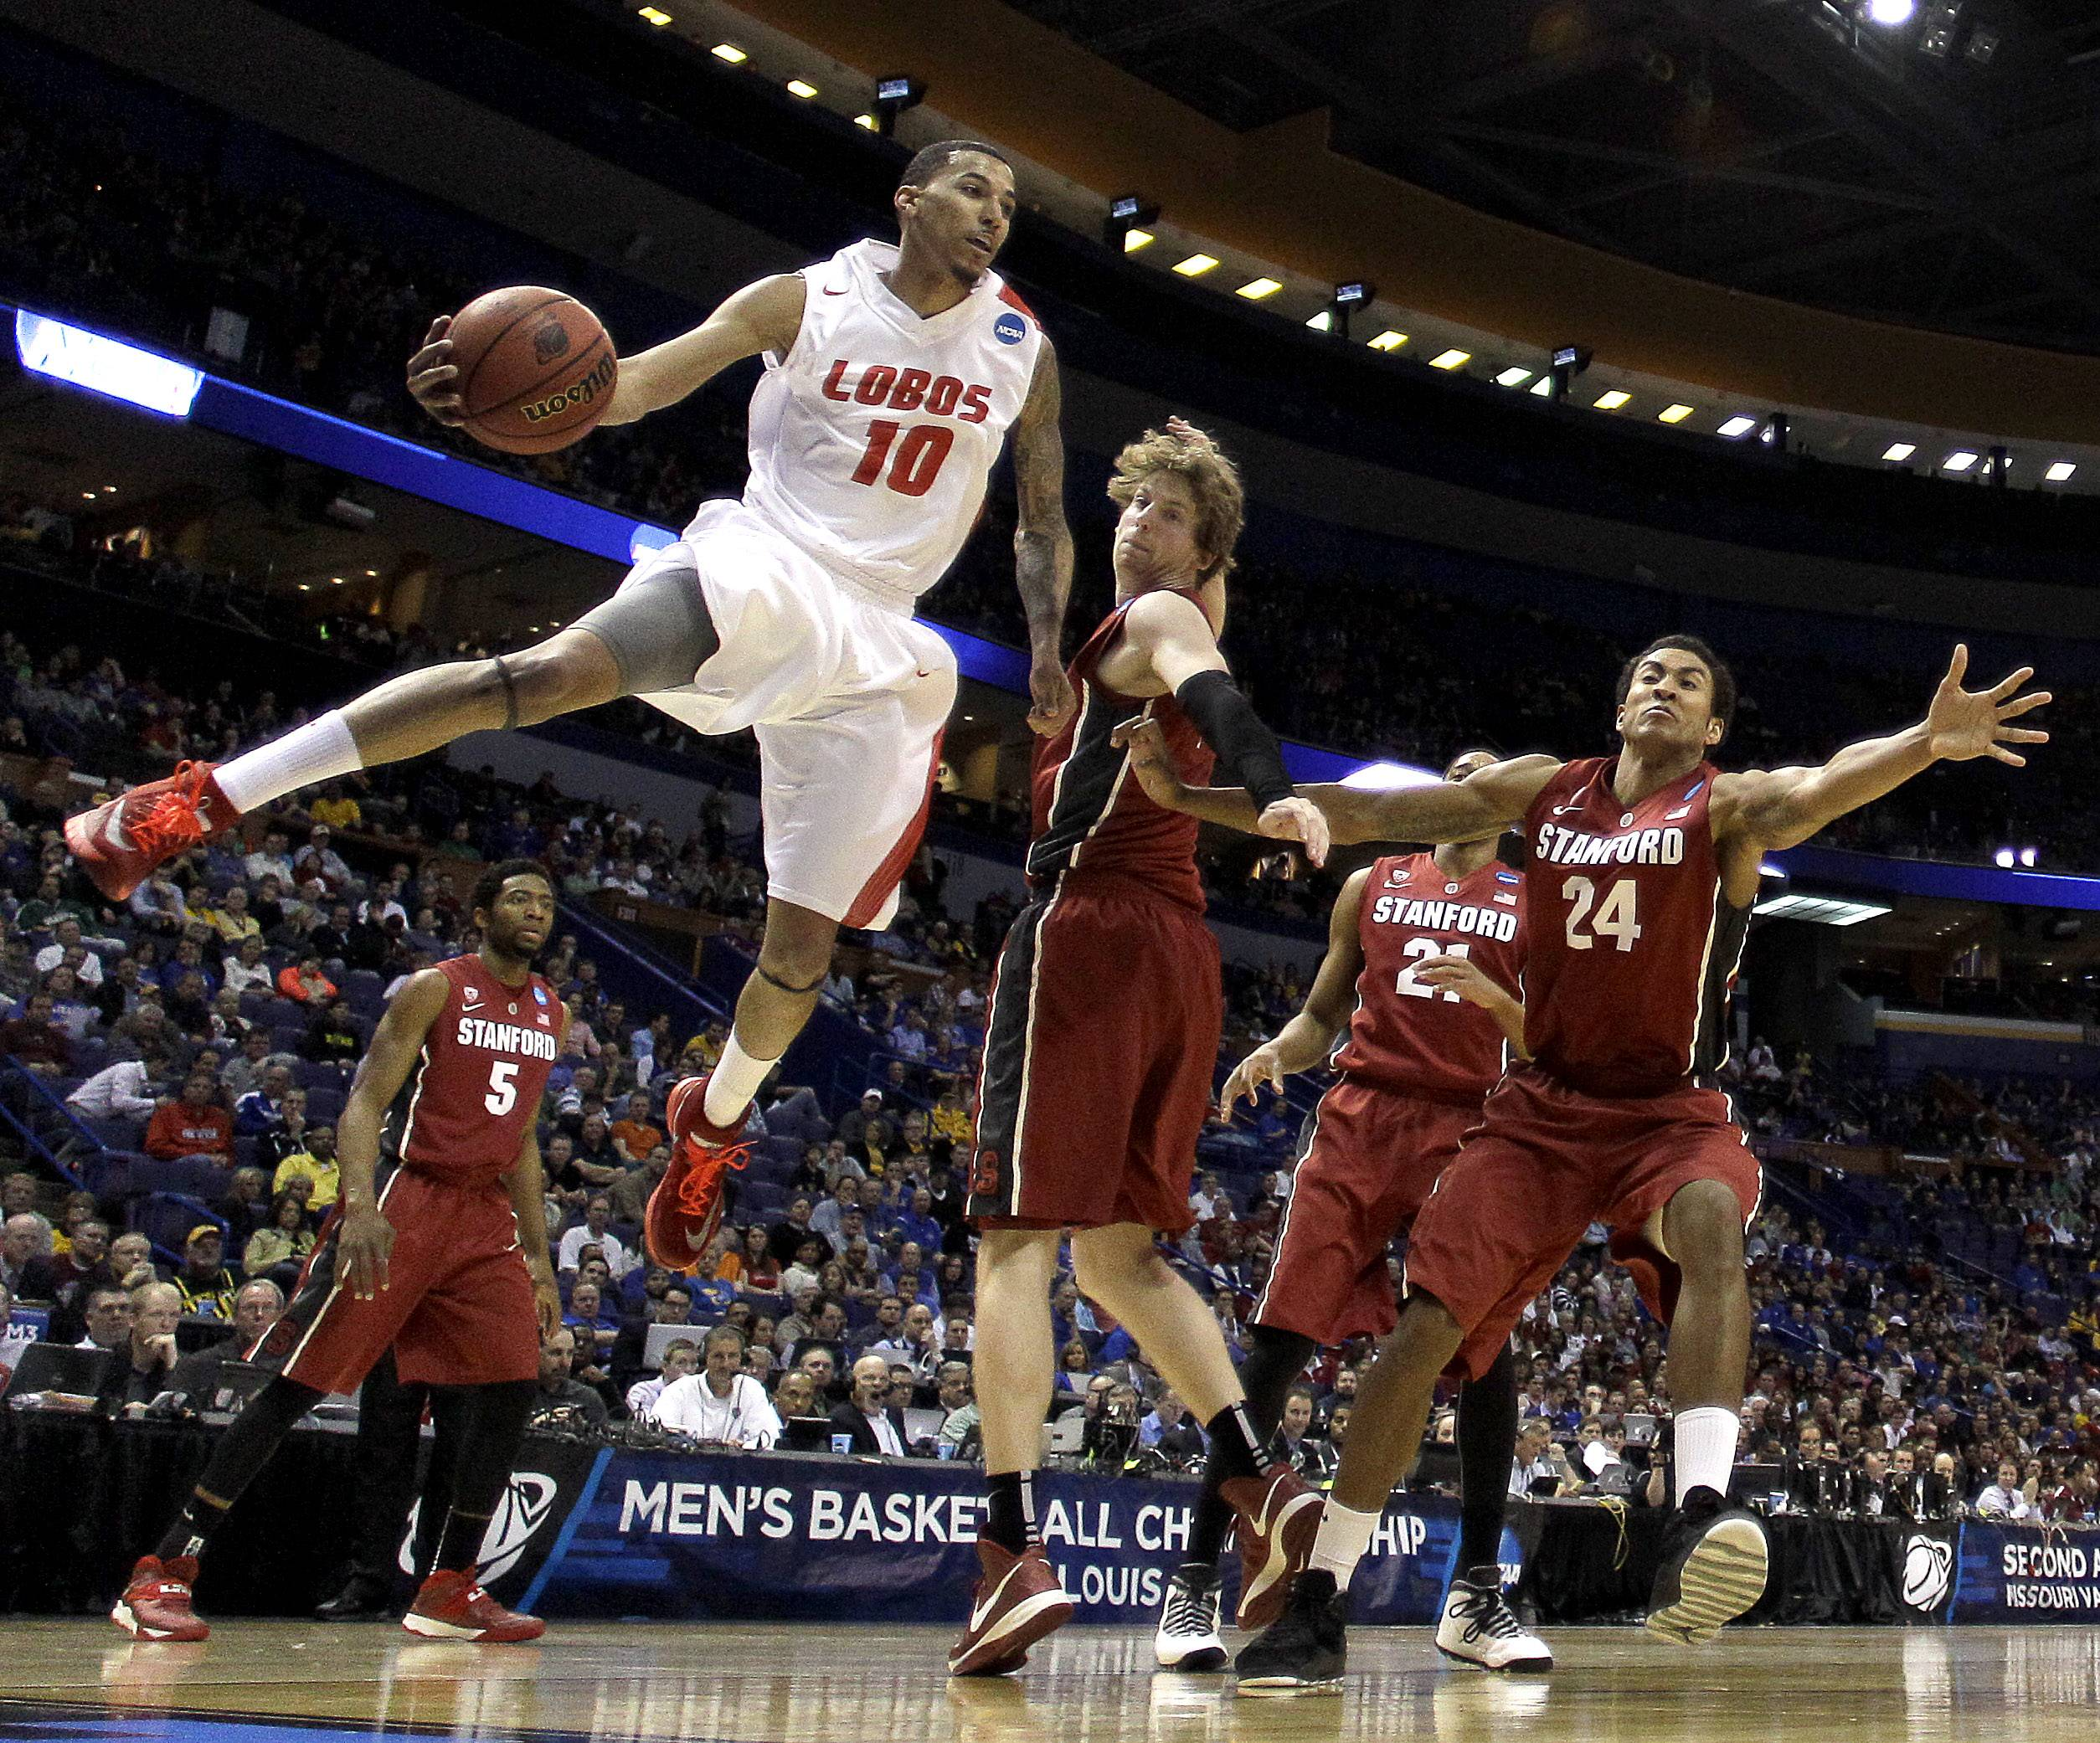 New Mexico's Kendall Williams (10) passes around Stanford's John Gage during the second half of a second-round game in the NCAA college basketball tournament, Friday, March 21, 2014, in St. Louis. Stanford won the game 58-53. (AP Photo/Charlie Riedel)